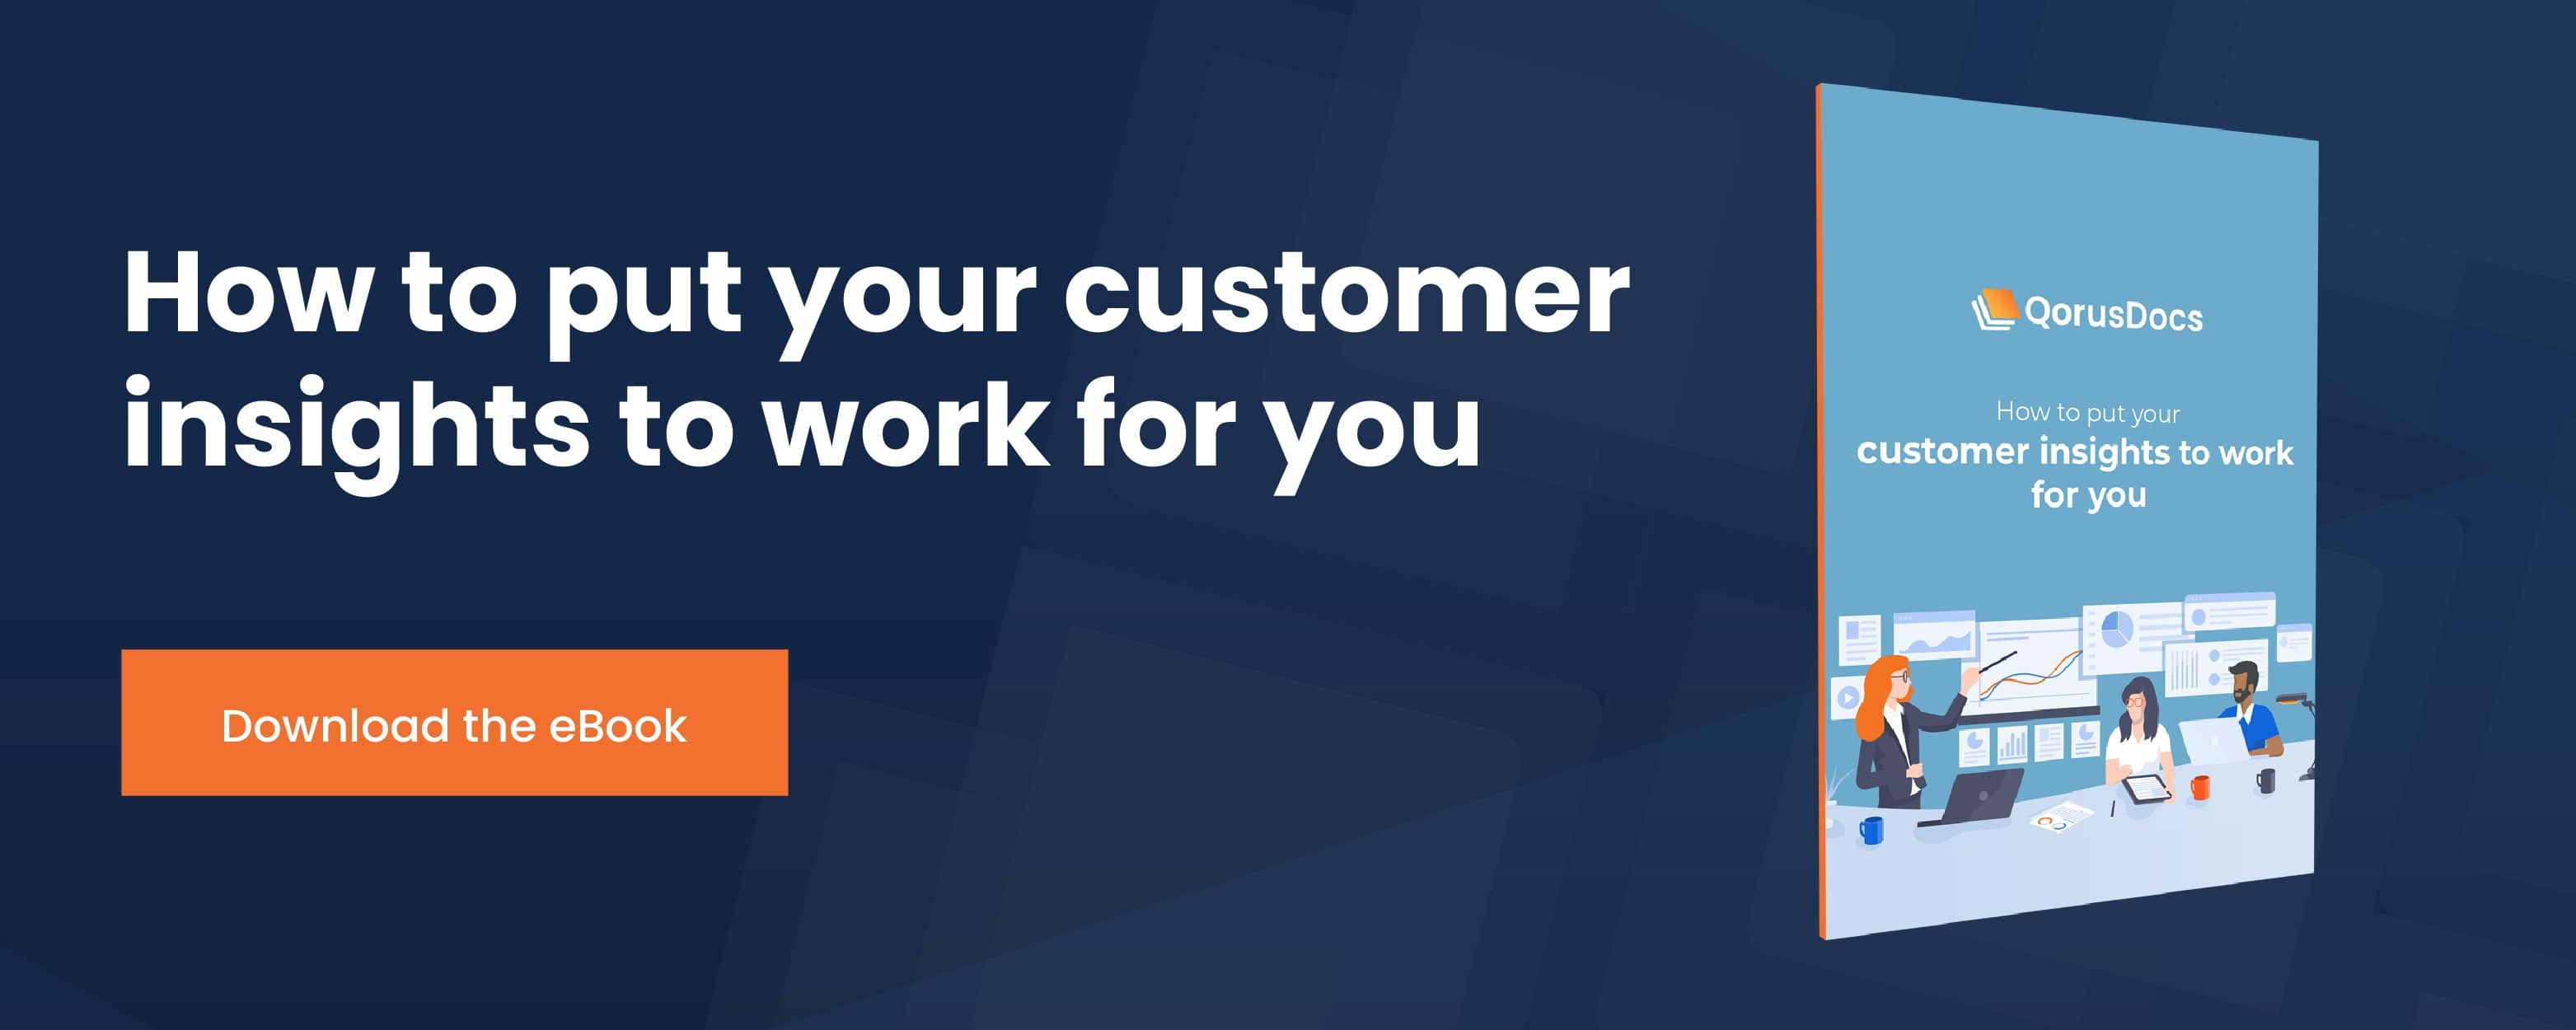 How to put your customer insights to work for you